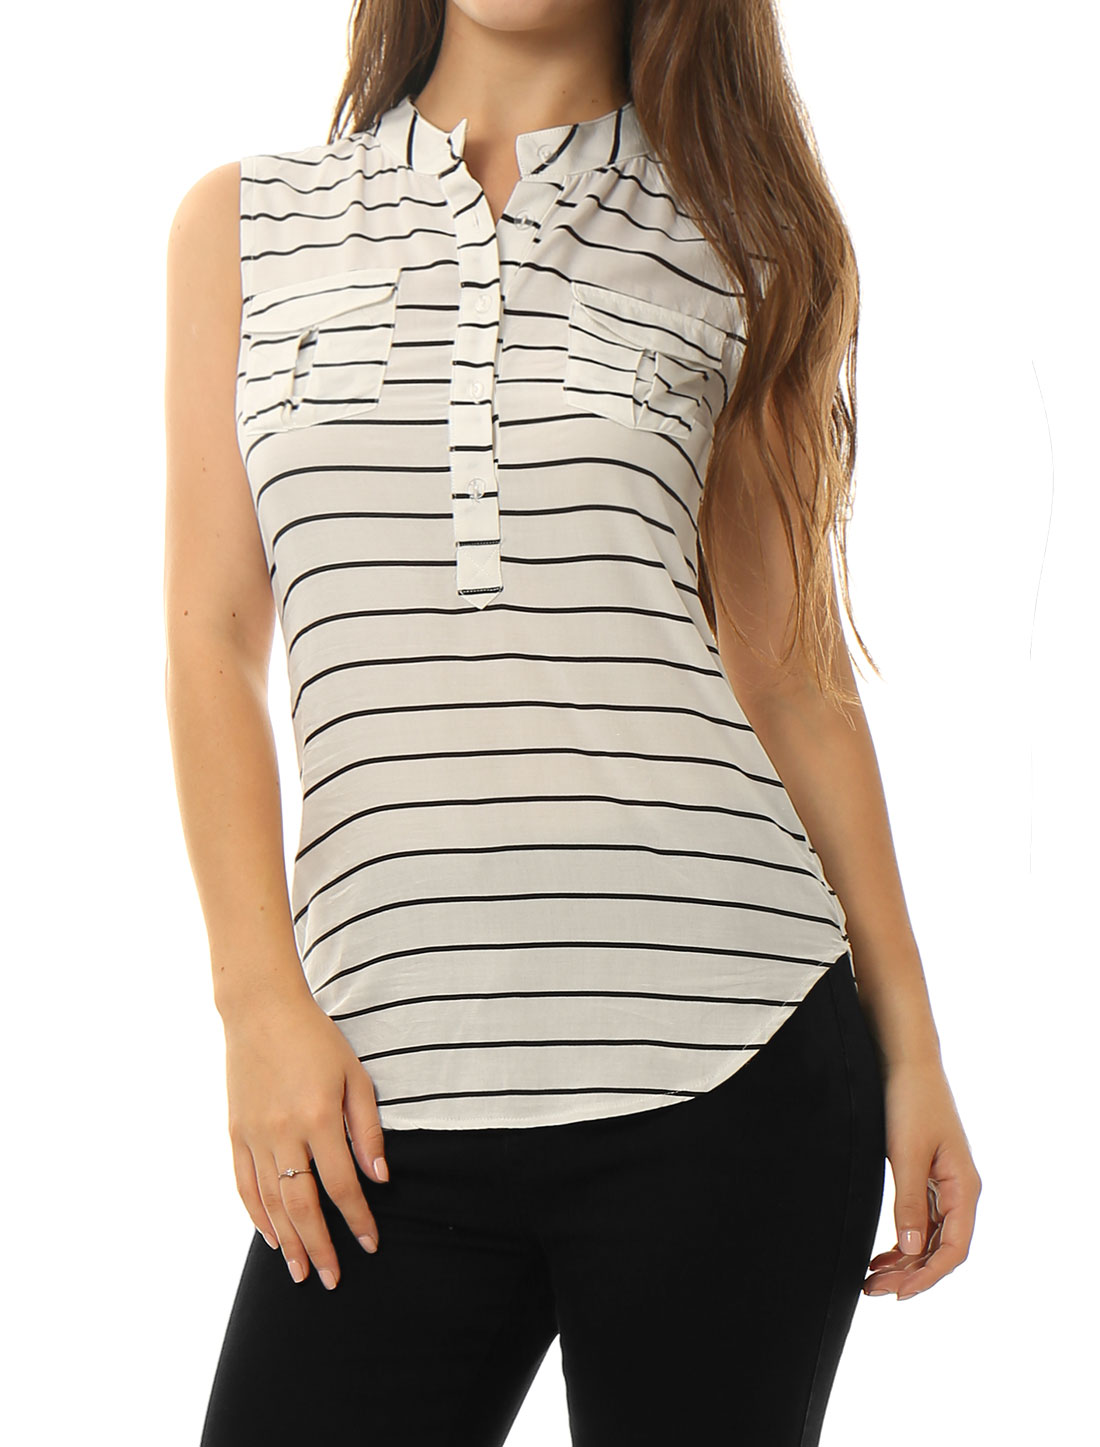 Women Stand Collar Half Placket Striped Sleeveless Shirt White L